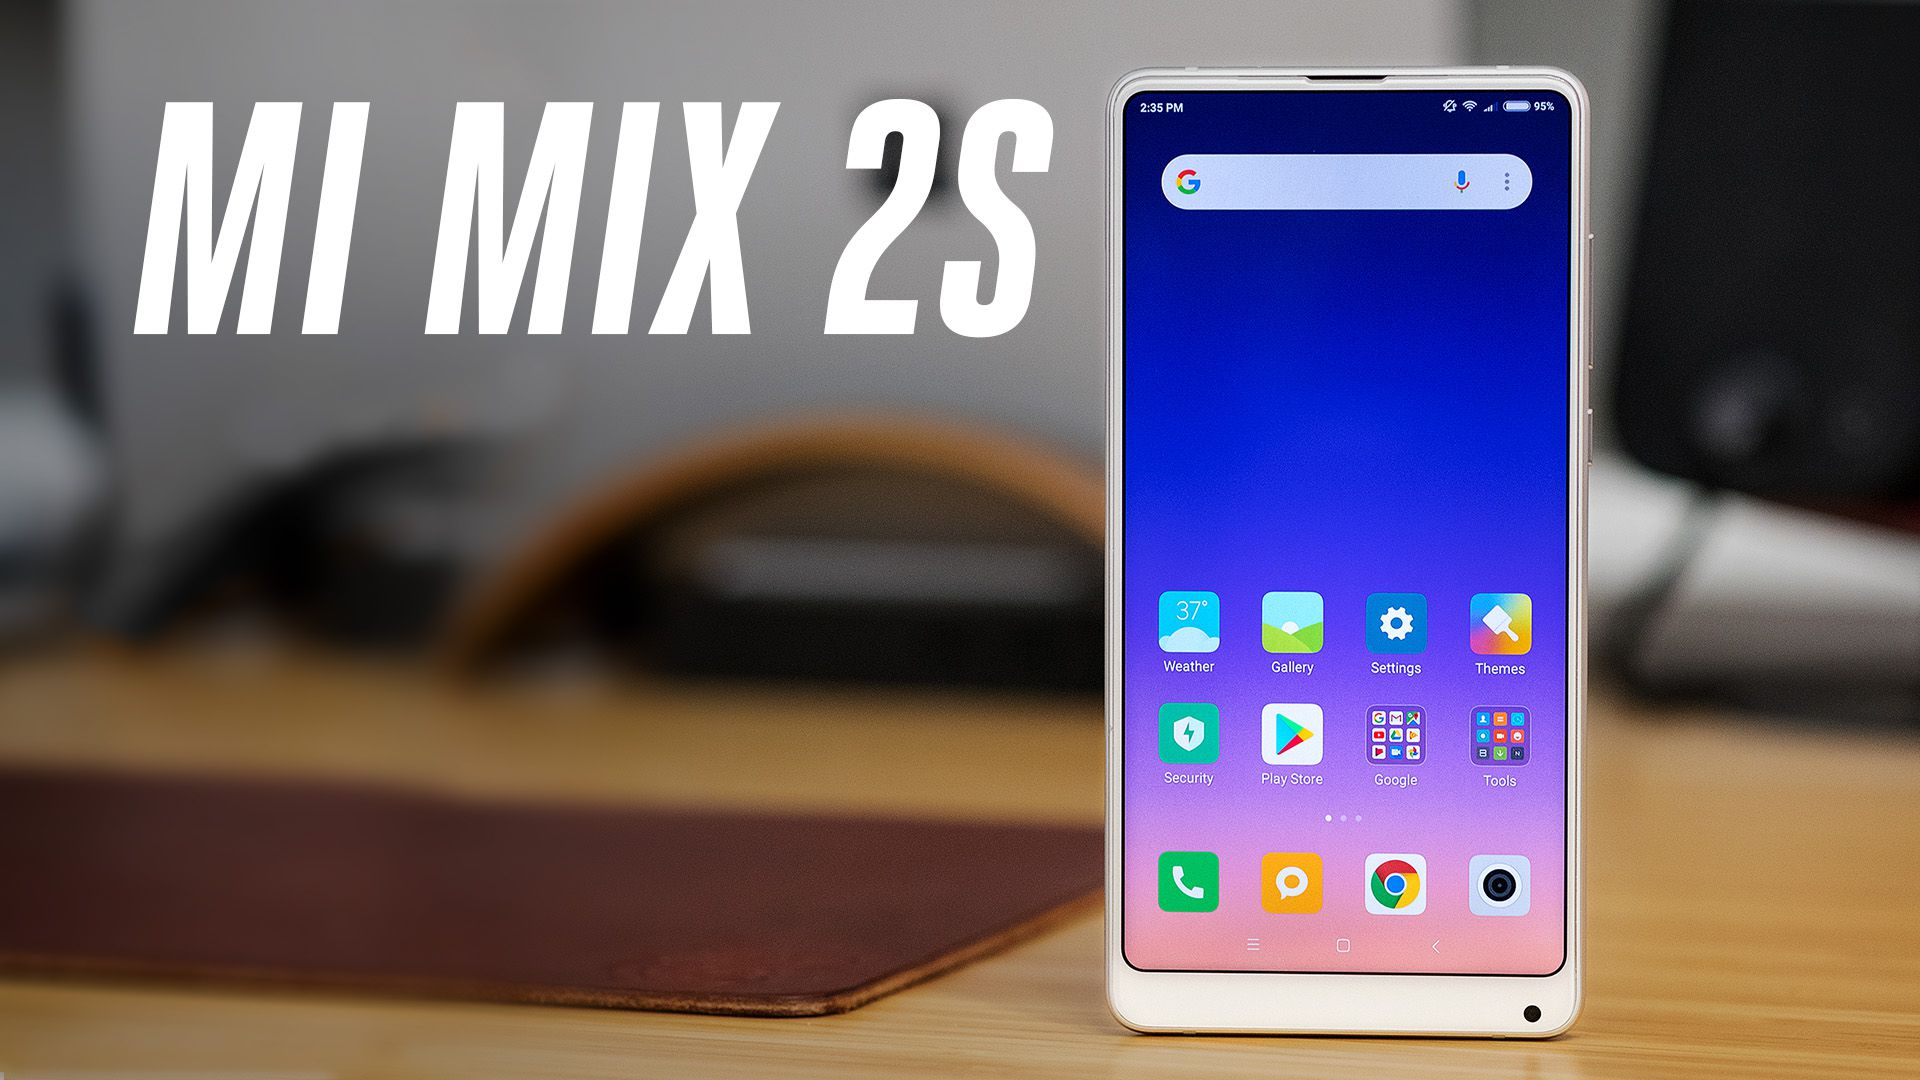 Xiaomi Says Its New Mi Mix 2s Has Better Features Than Apples Original Kabel Data Micro Usb Redmi 2 3 4 Note Iphone X The Verge